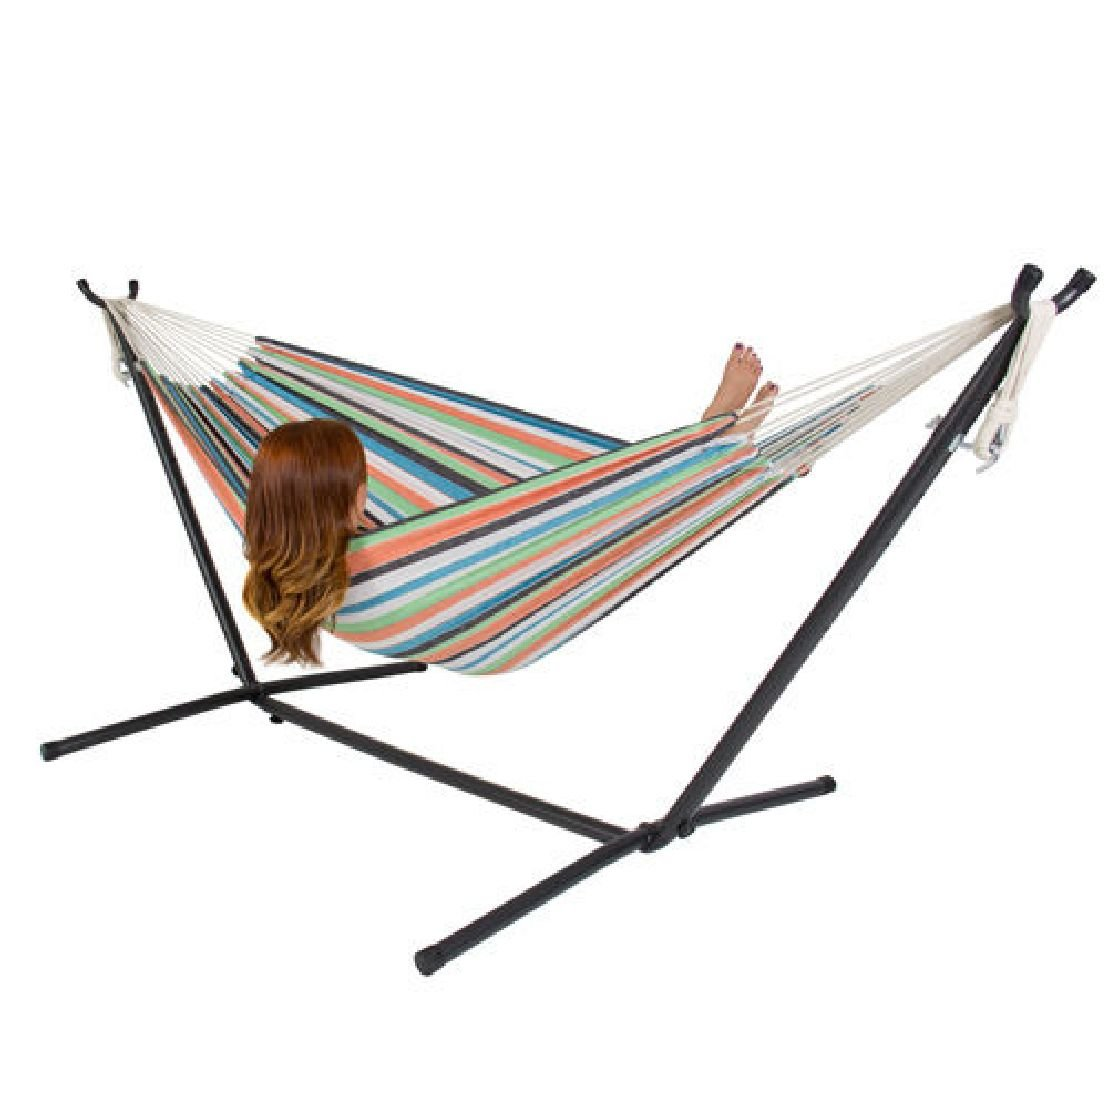 Double Hammock with Space Saving Steel Stand Includes Portable Carrying Case by BEC